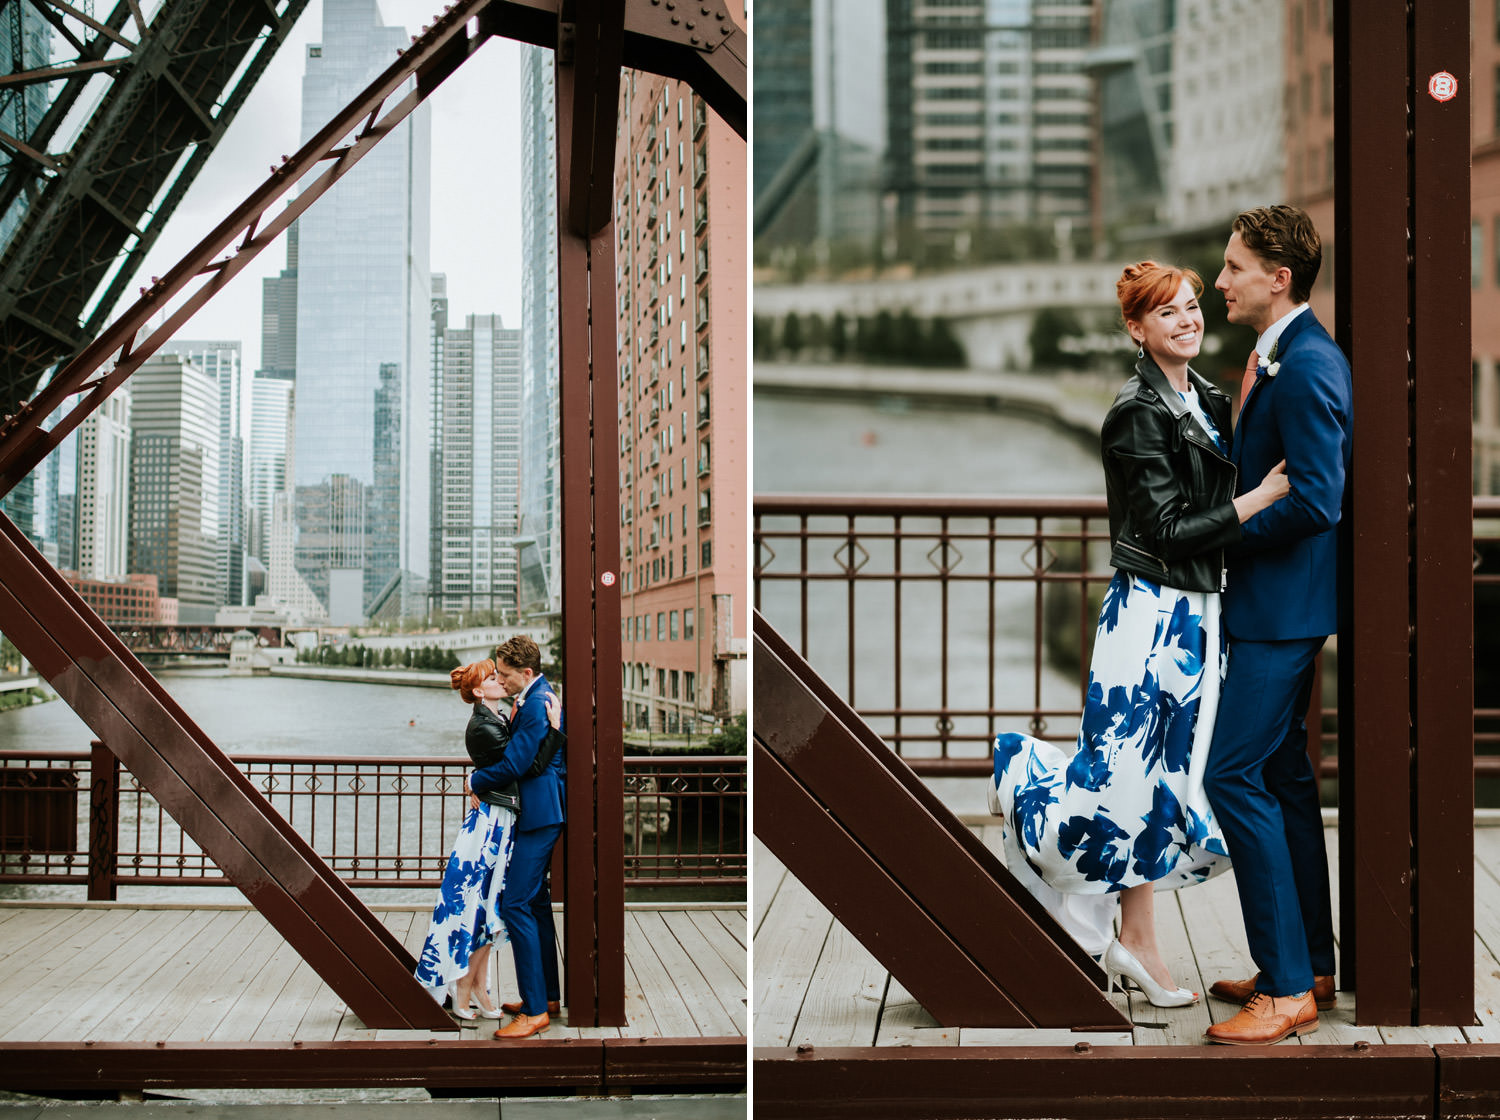 creative portrait of the bride and groom taken in down town Chicago during their elopement